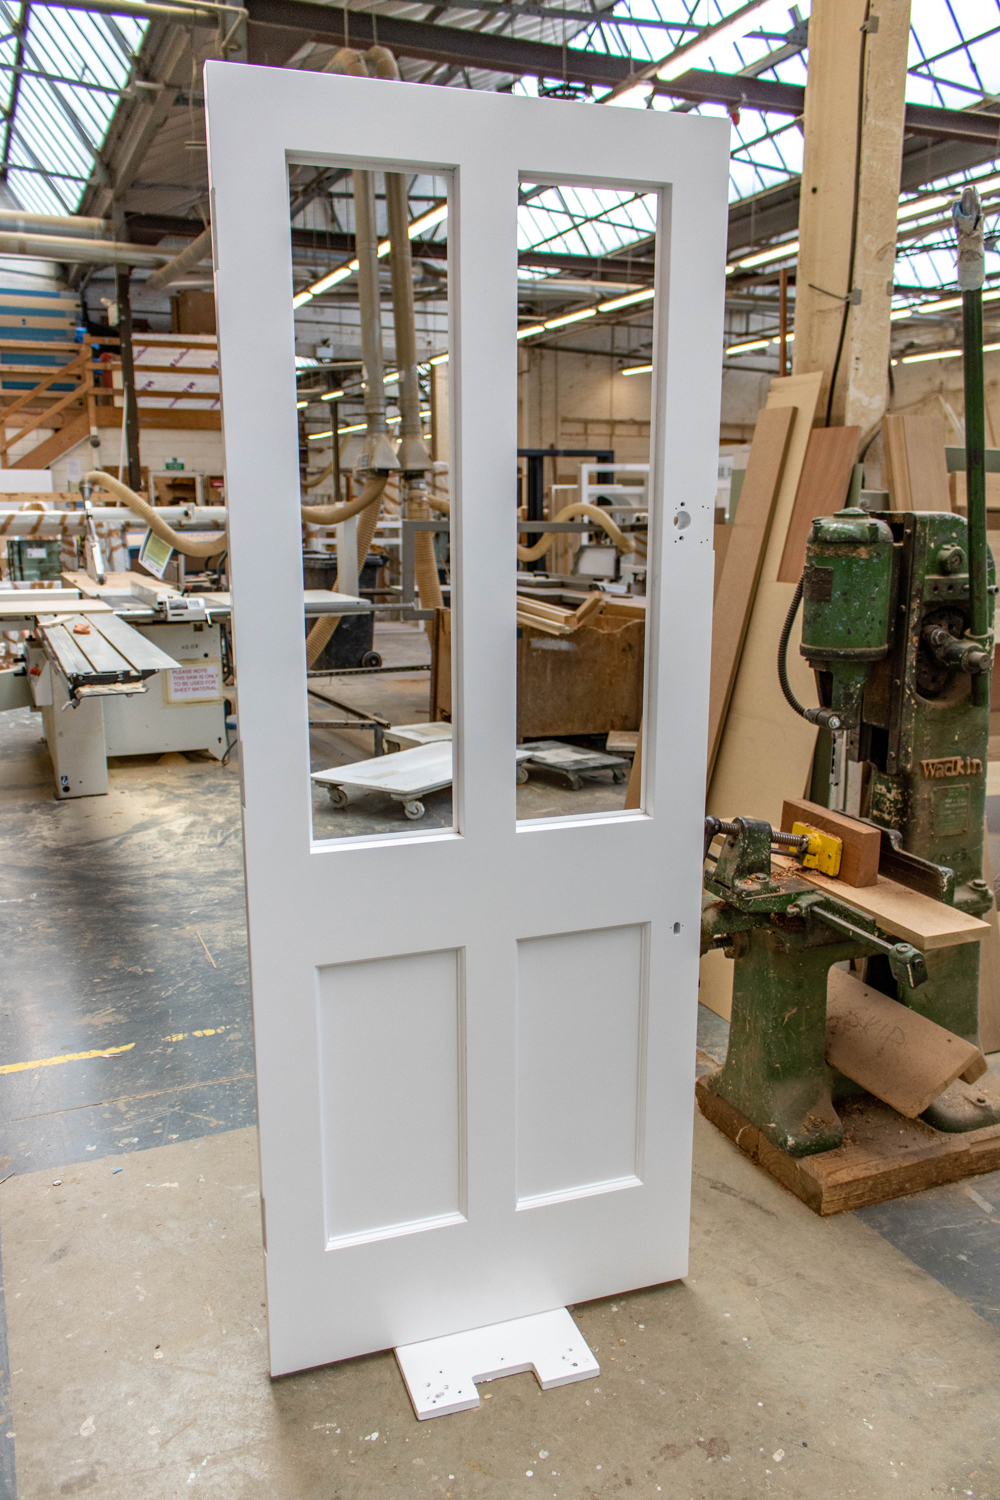 white door with empty glass panels in k&d joinery workshop